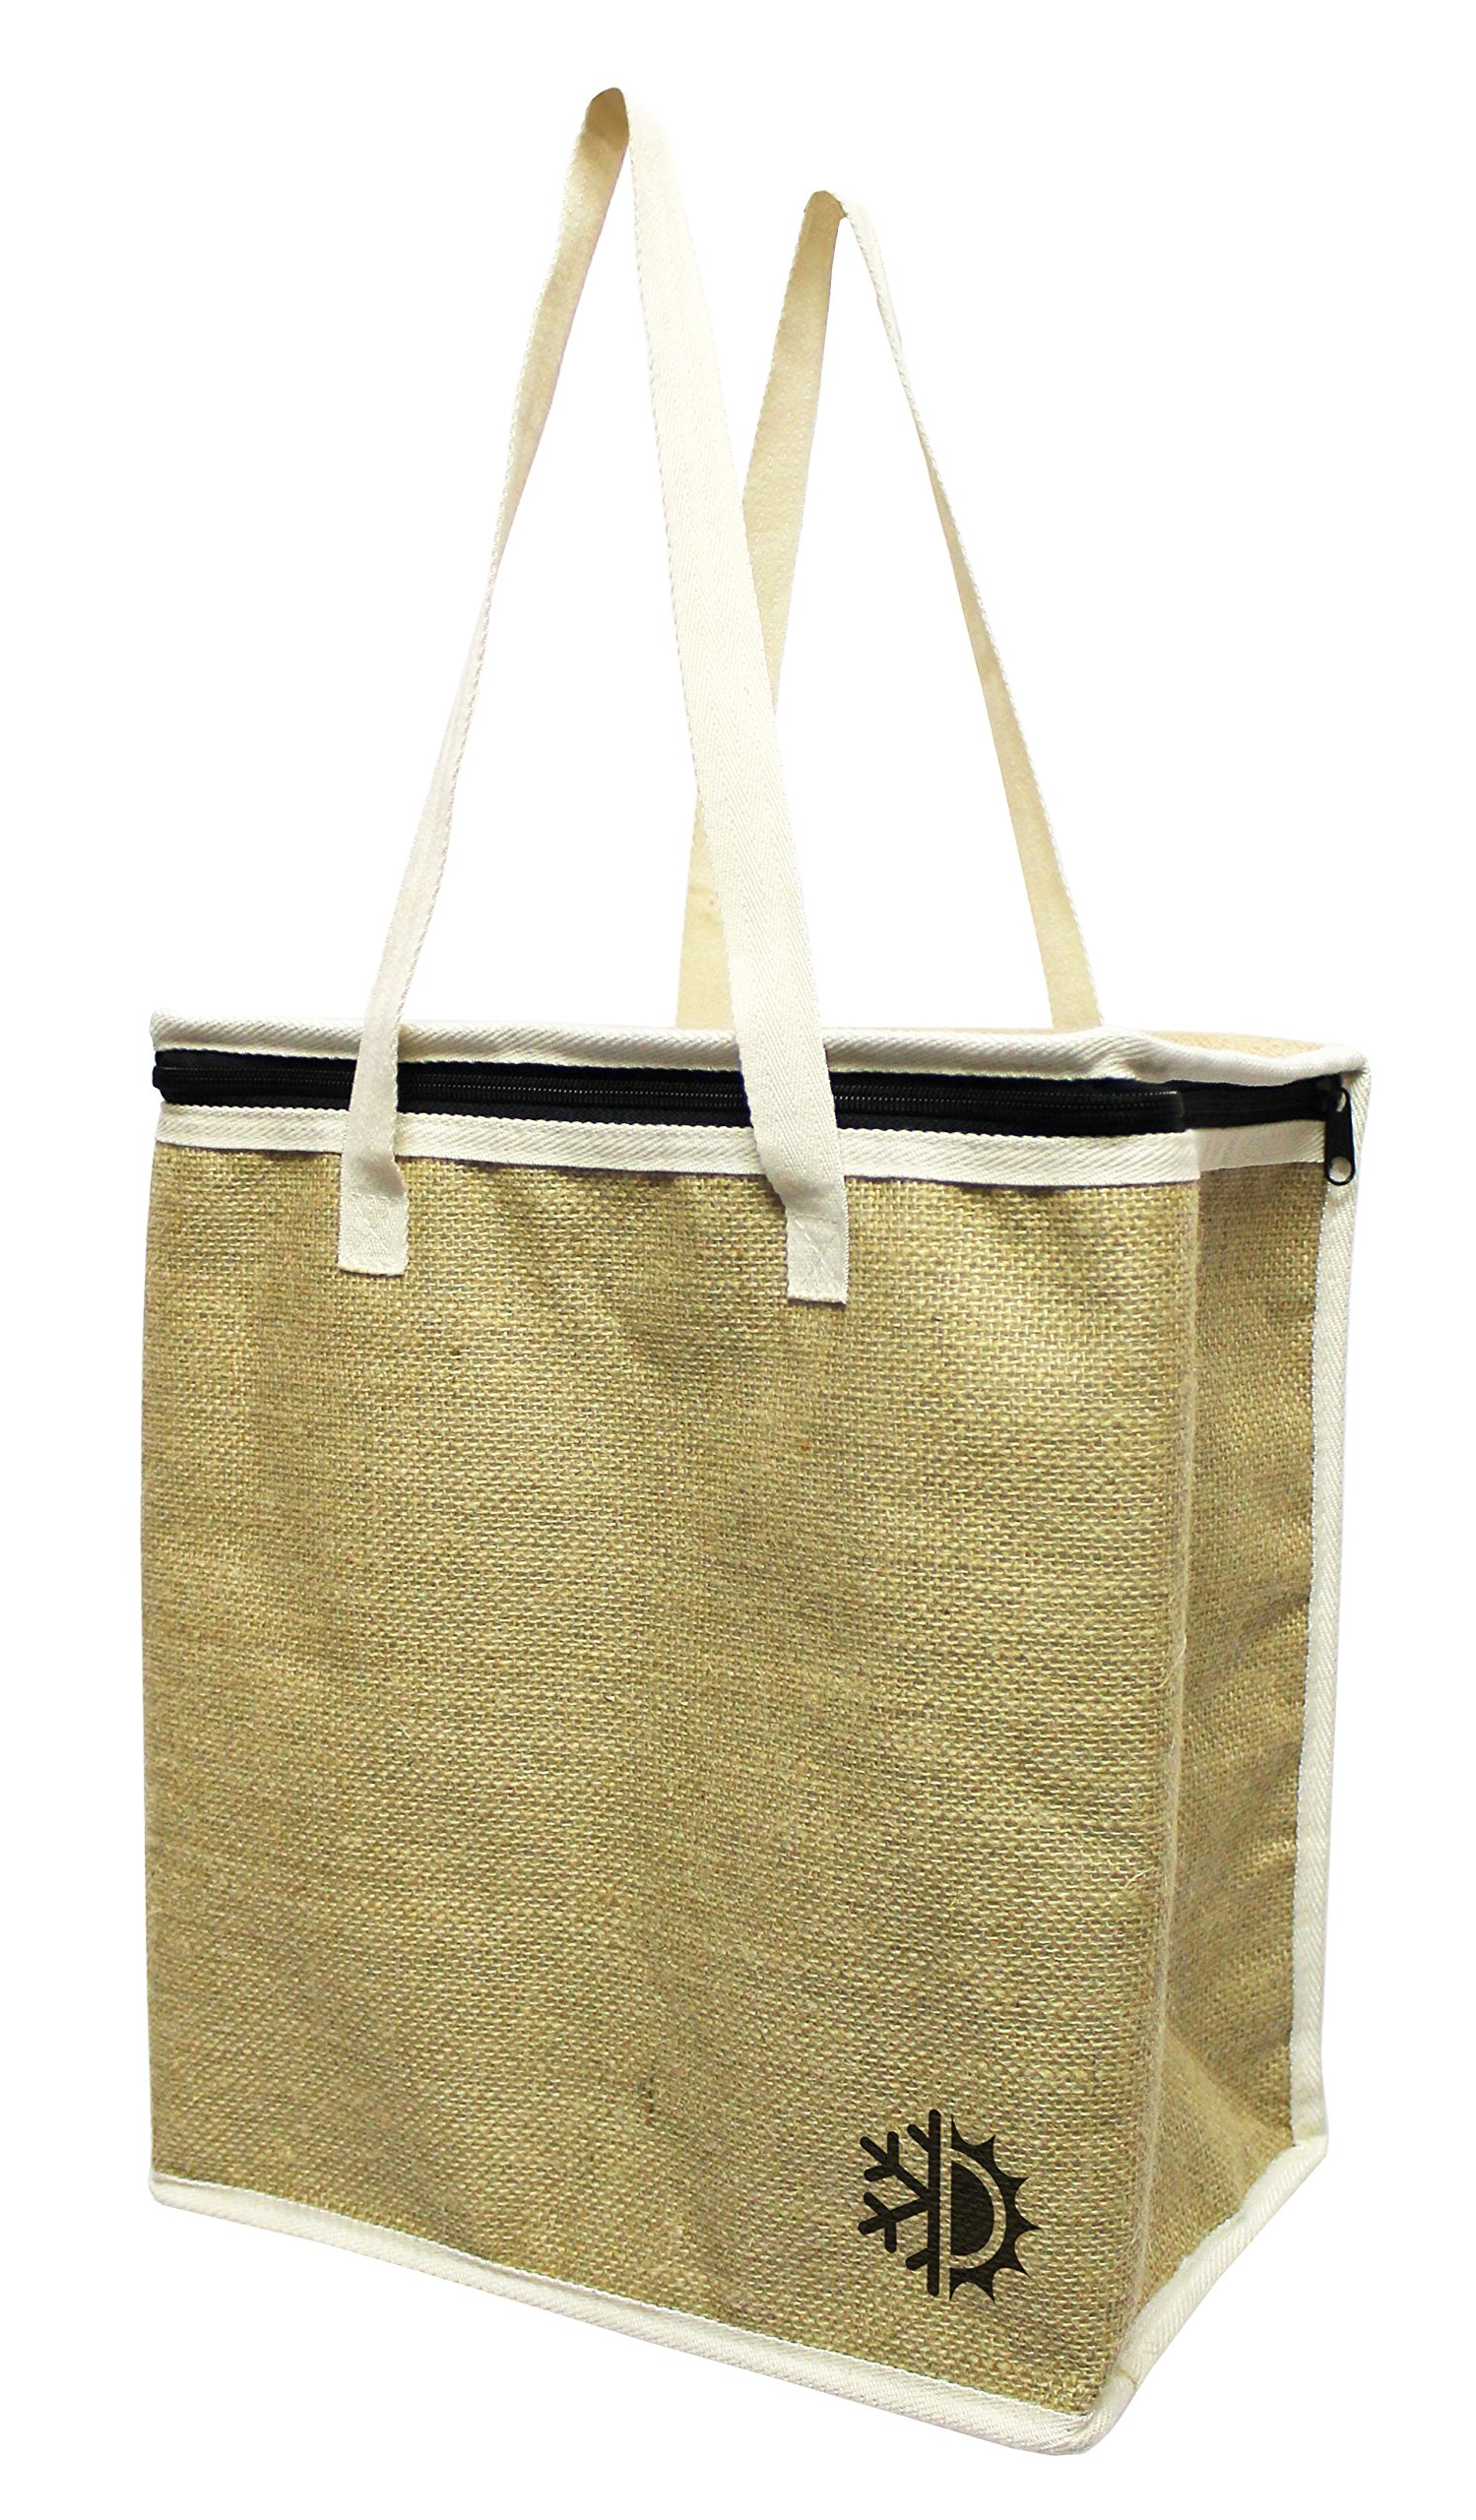 Earthwise Large Jute Insulated Shopping Grocery Bags w ZIPPER TOP LID Thermal Cooler Tote KEEPS FOOD HOT OR COLD (Set of 2) by Earthwise (Image #3)